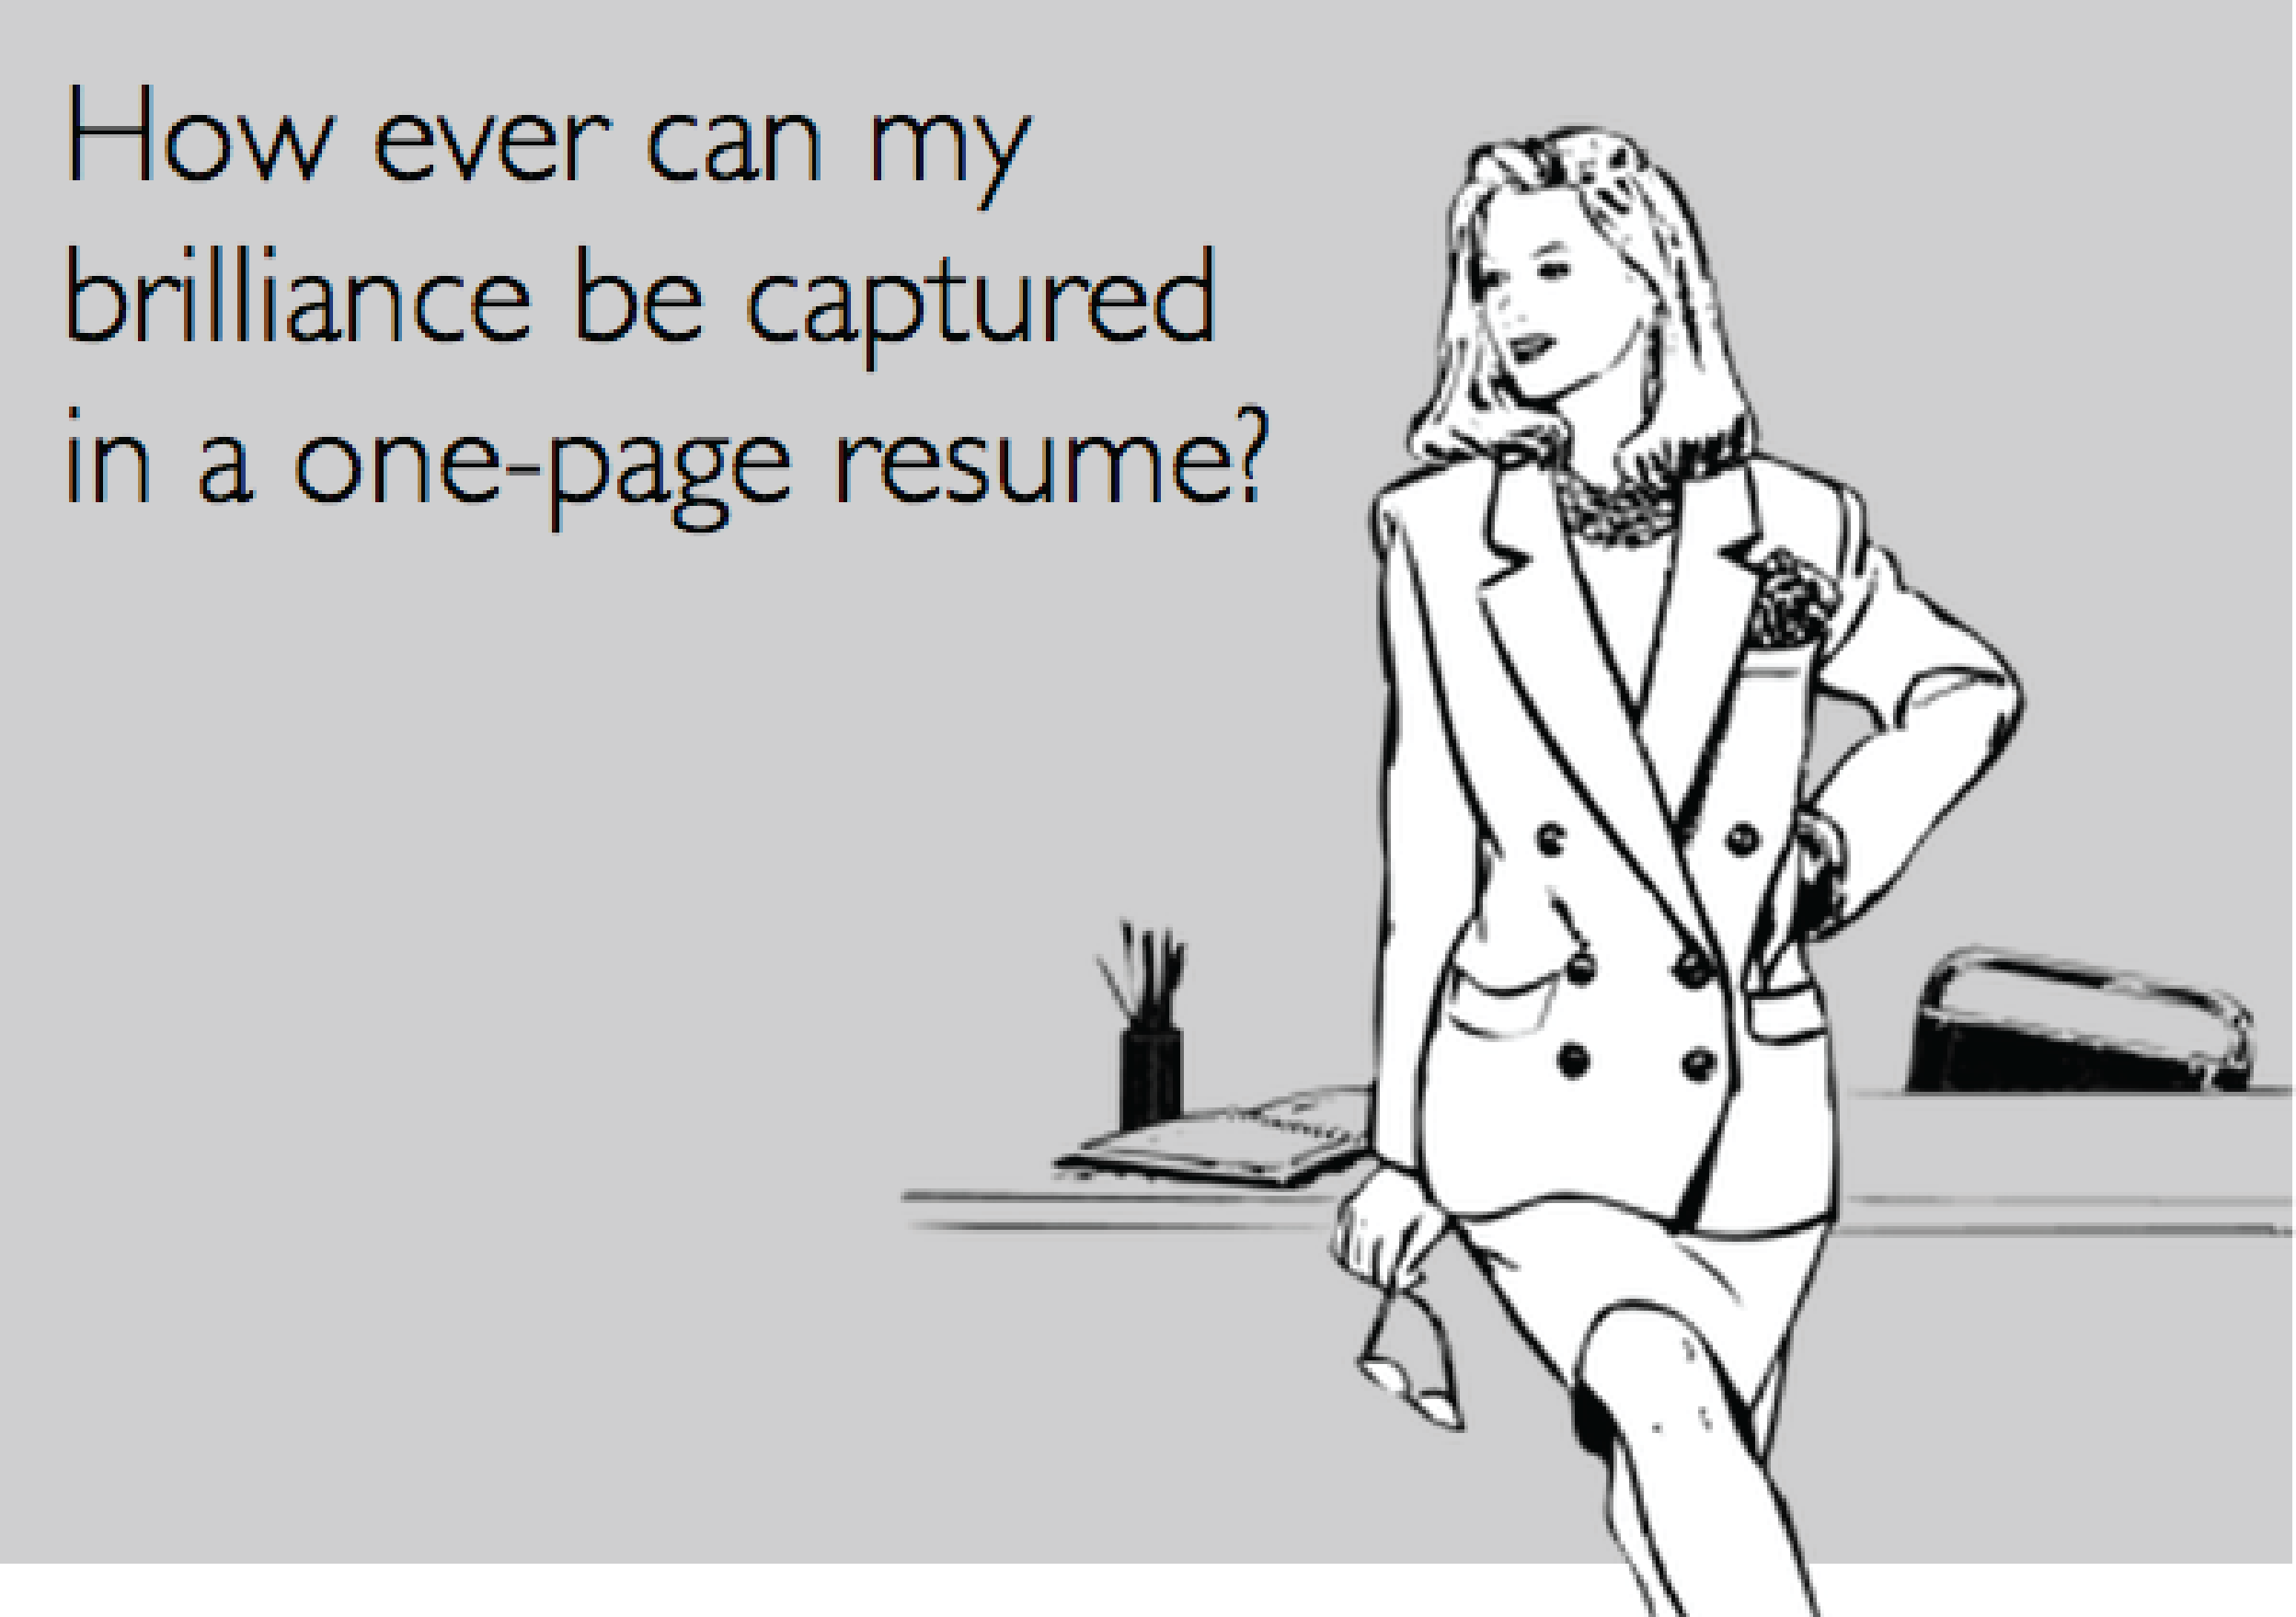 Get one step closer to the #interview you want by